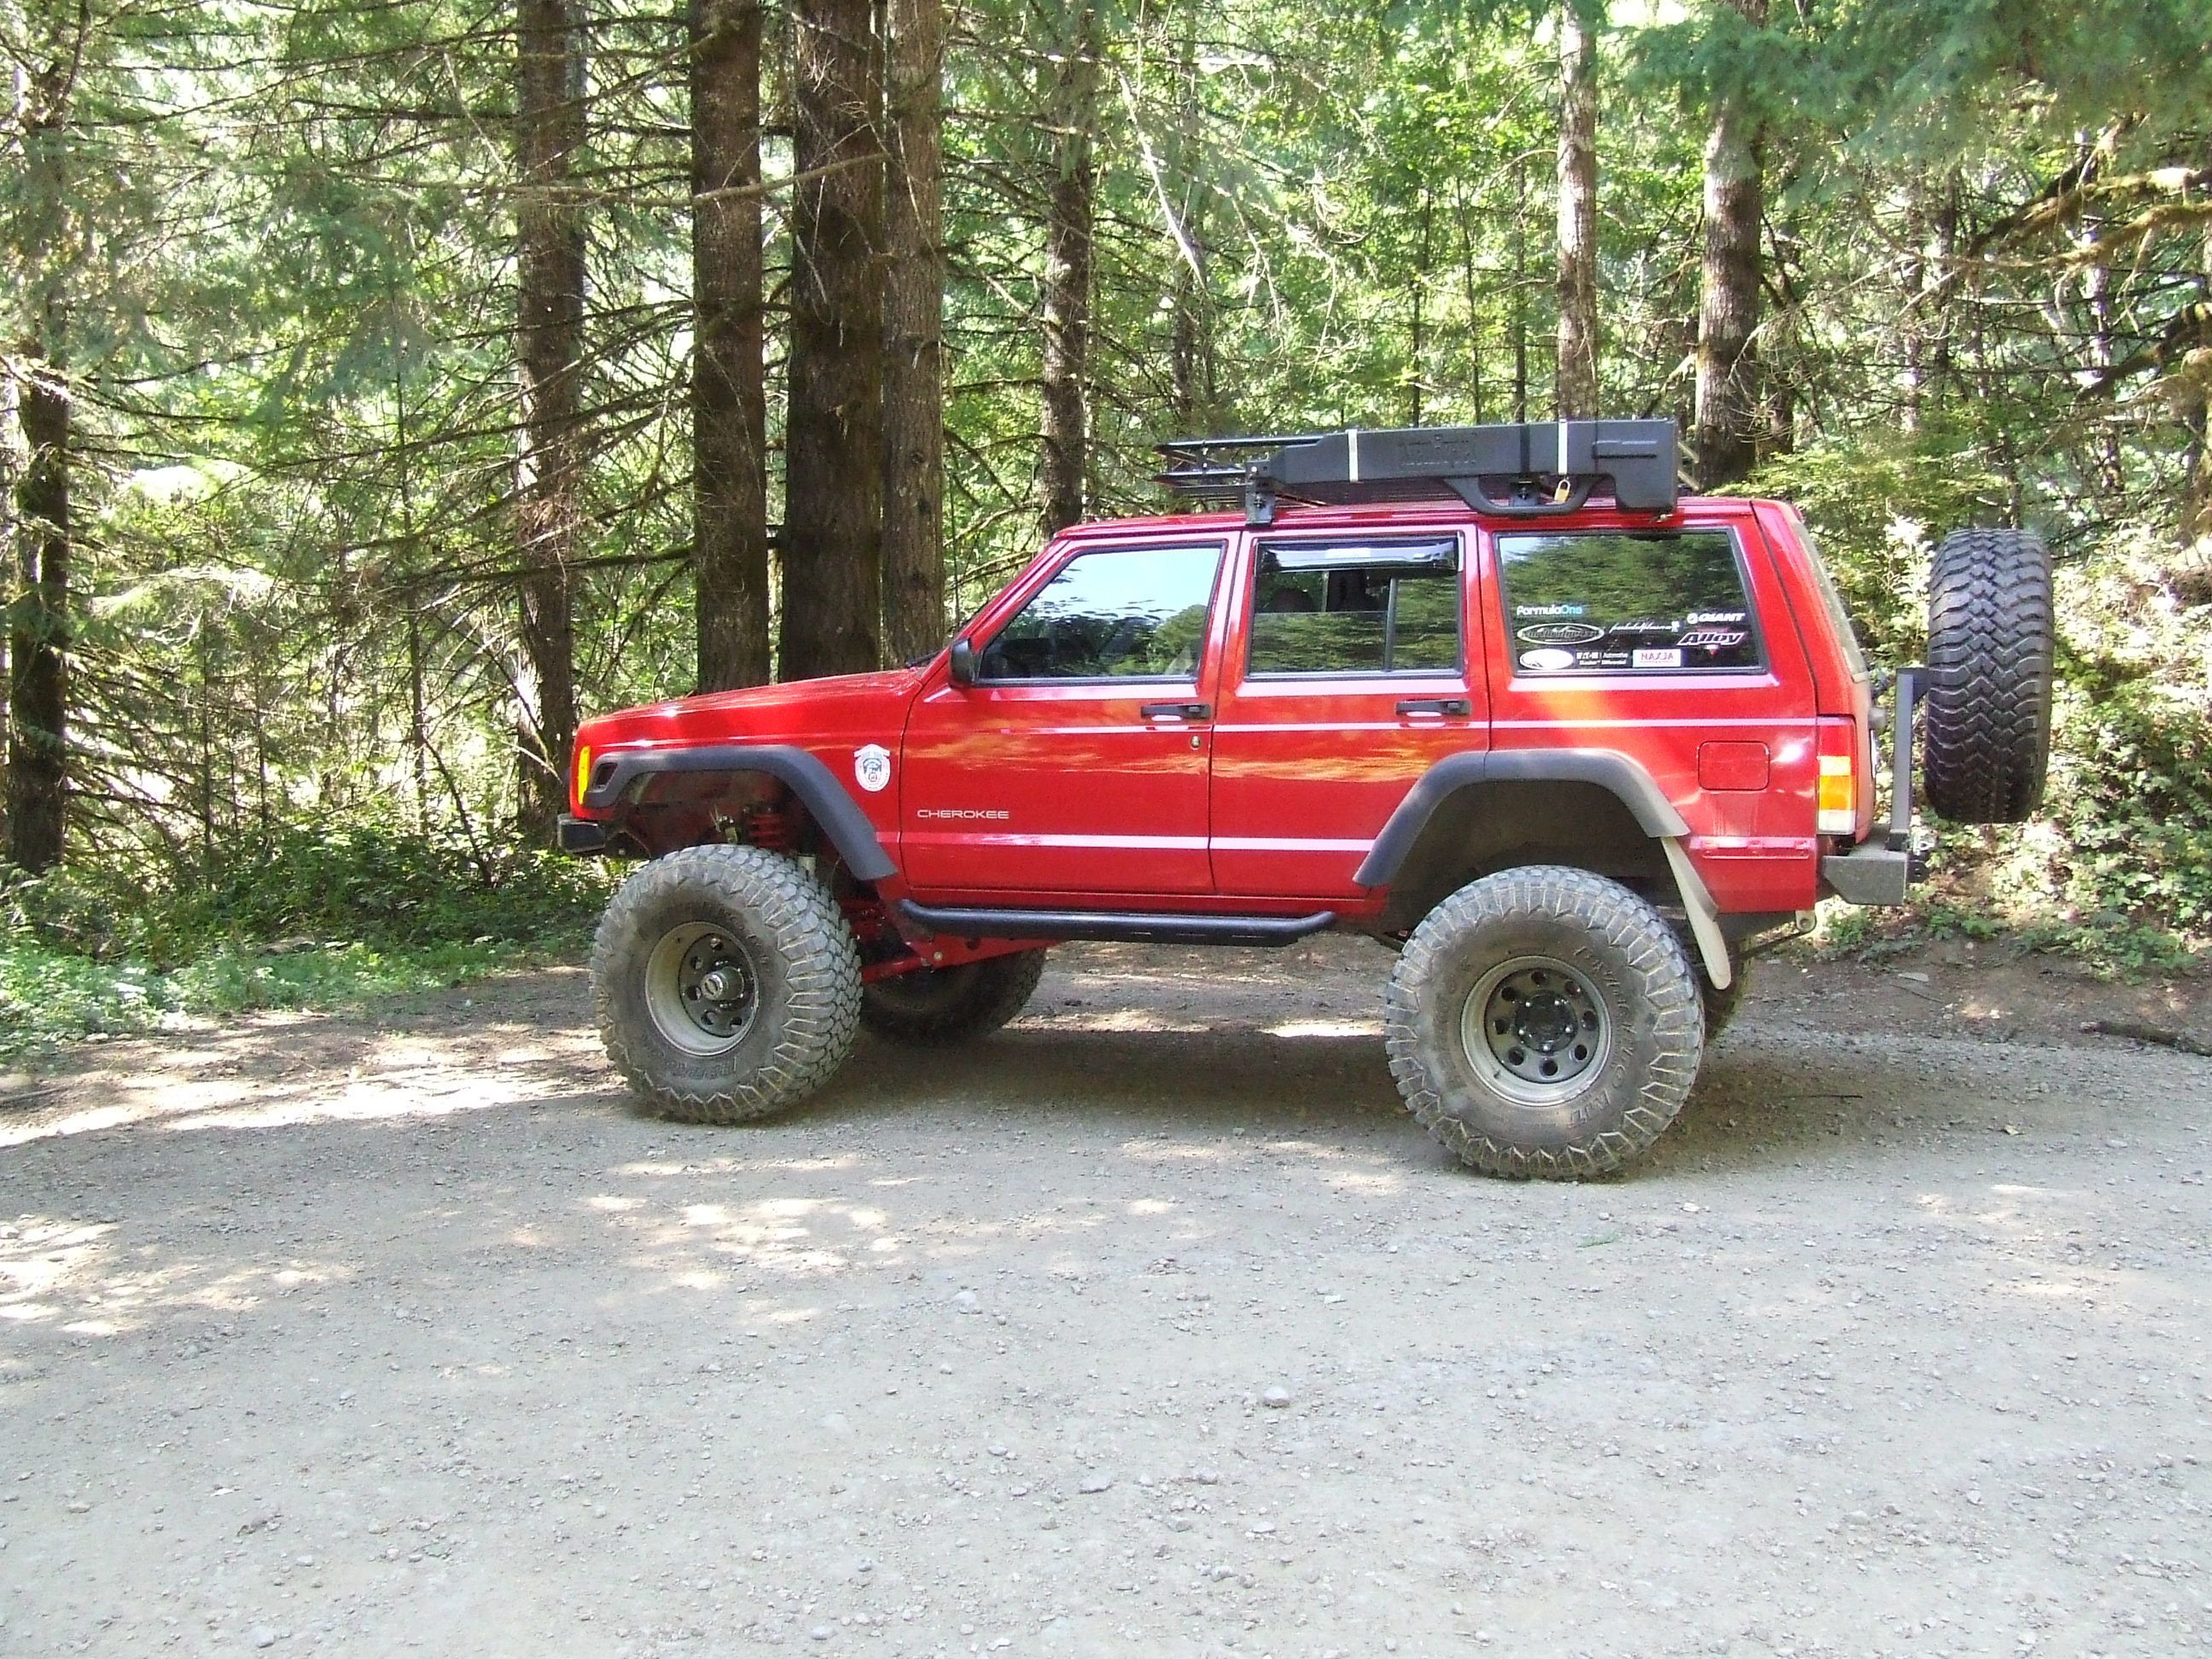 90 S Jeep With Raised Suspension And Red In Color Custom Jeep